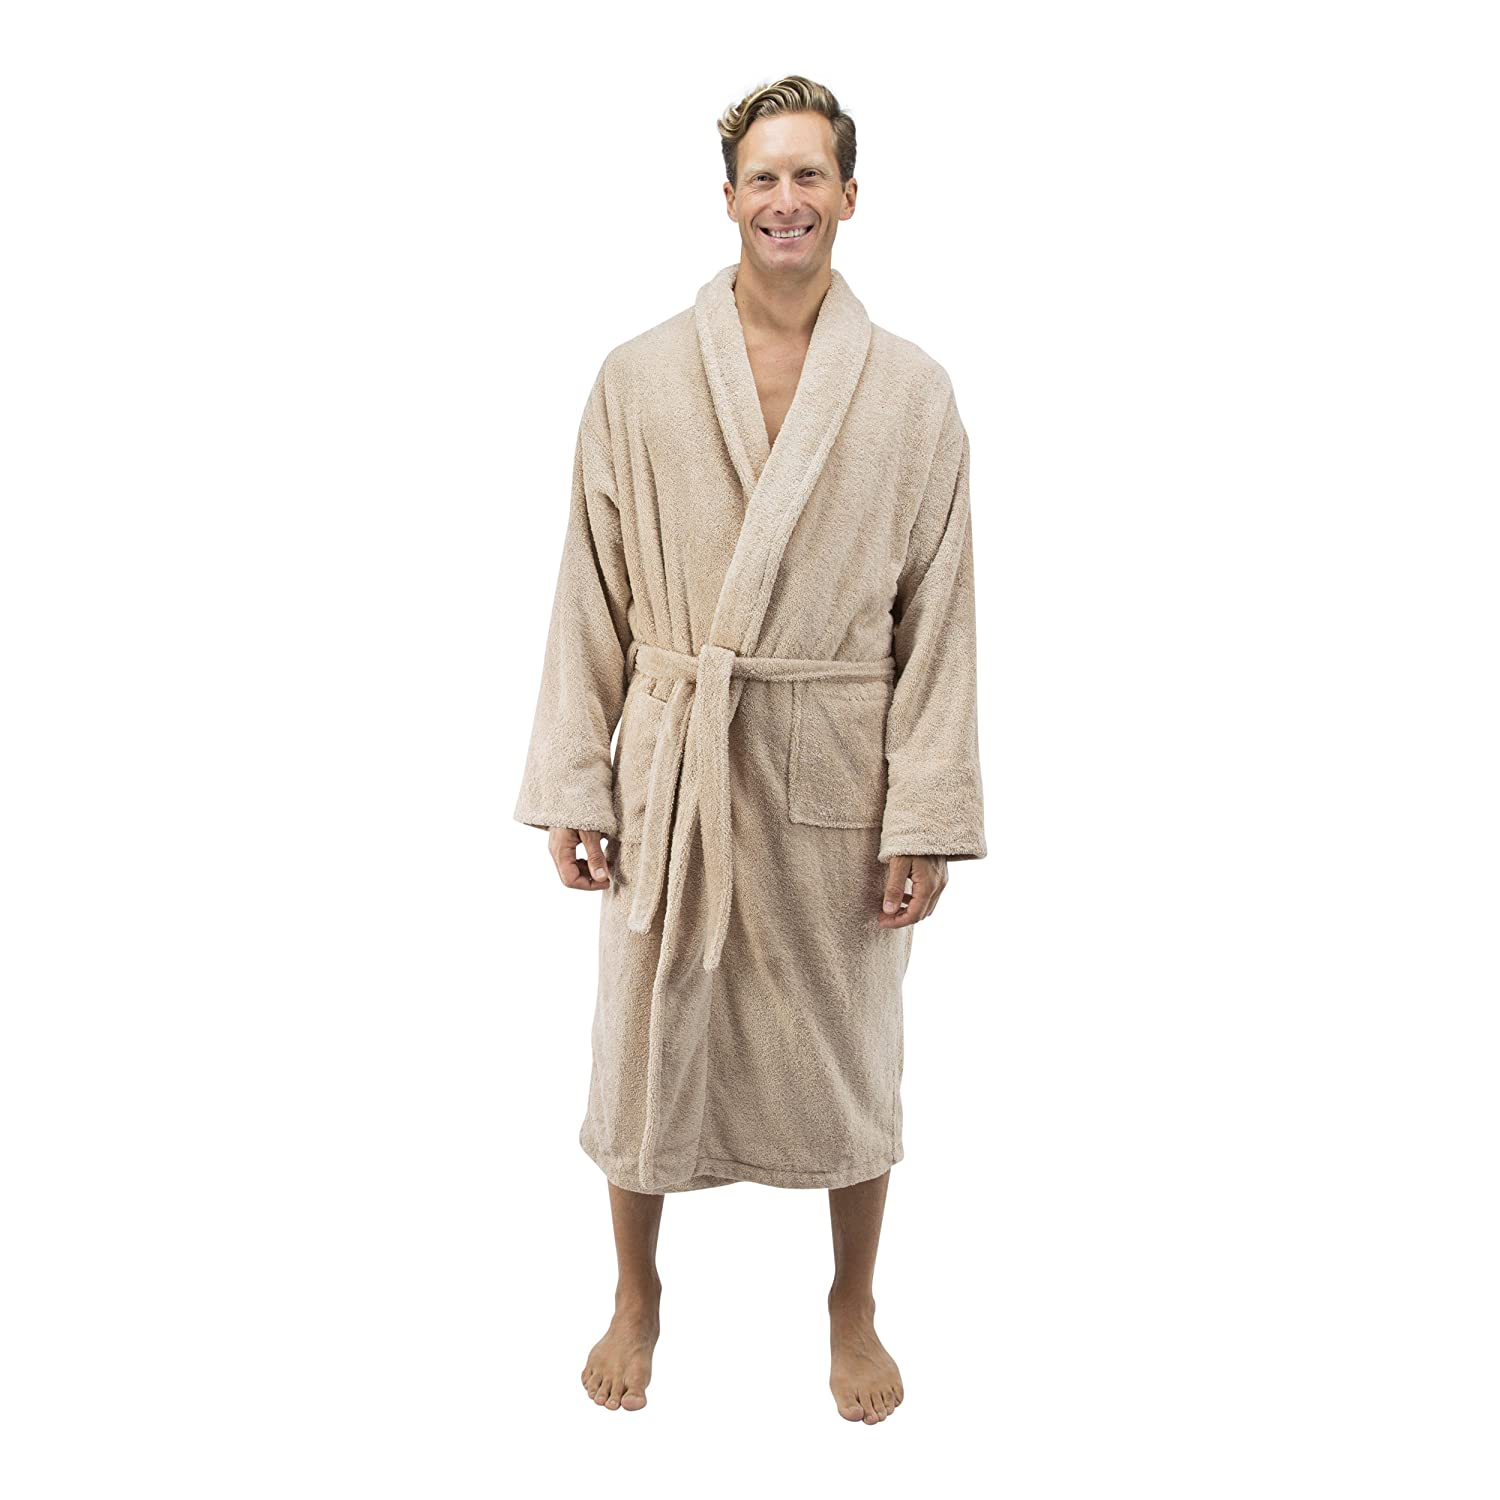 d4a690b17b Comfy Robes Men s Deluxe 20 oz. Turkish Terry Bathrobe at Amazon Men s  Clothing store